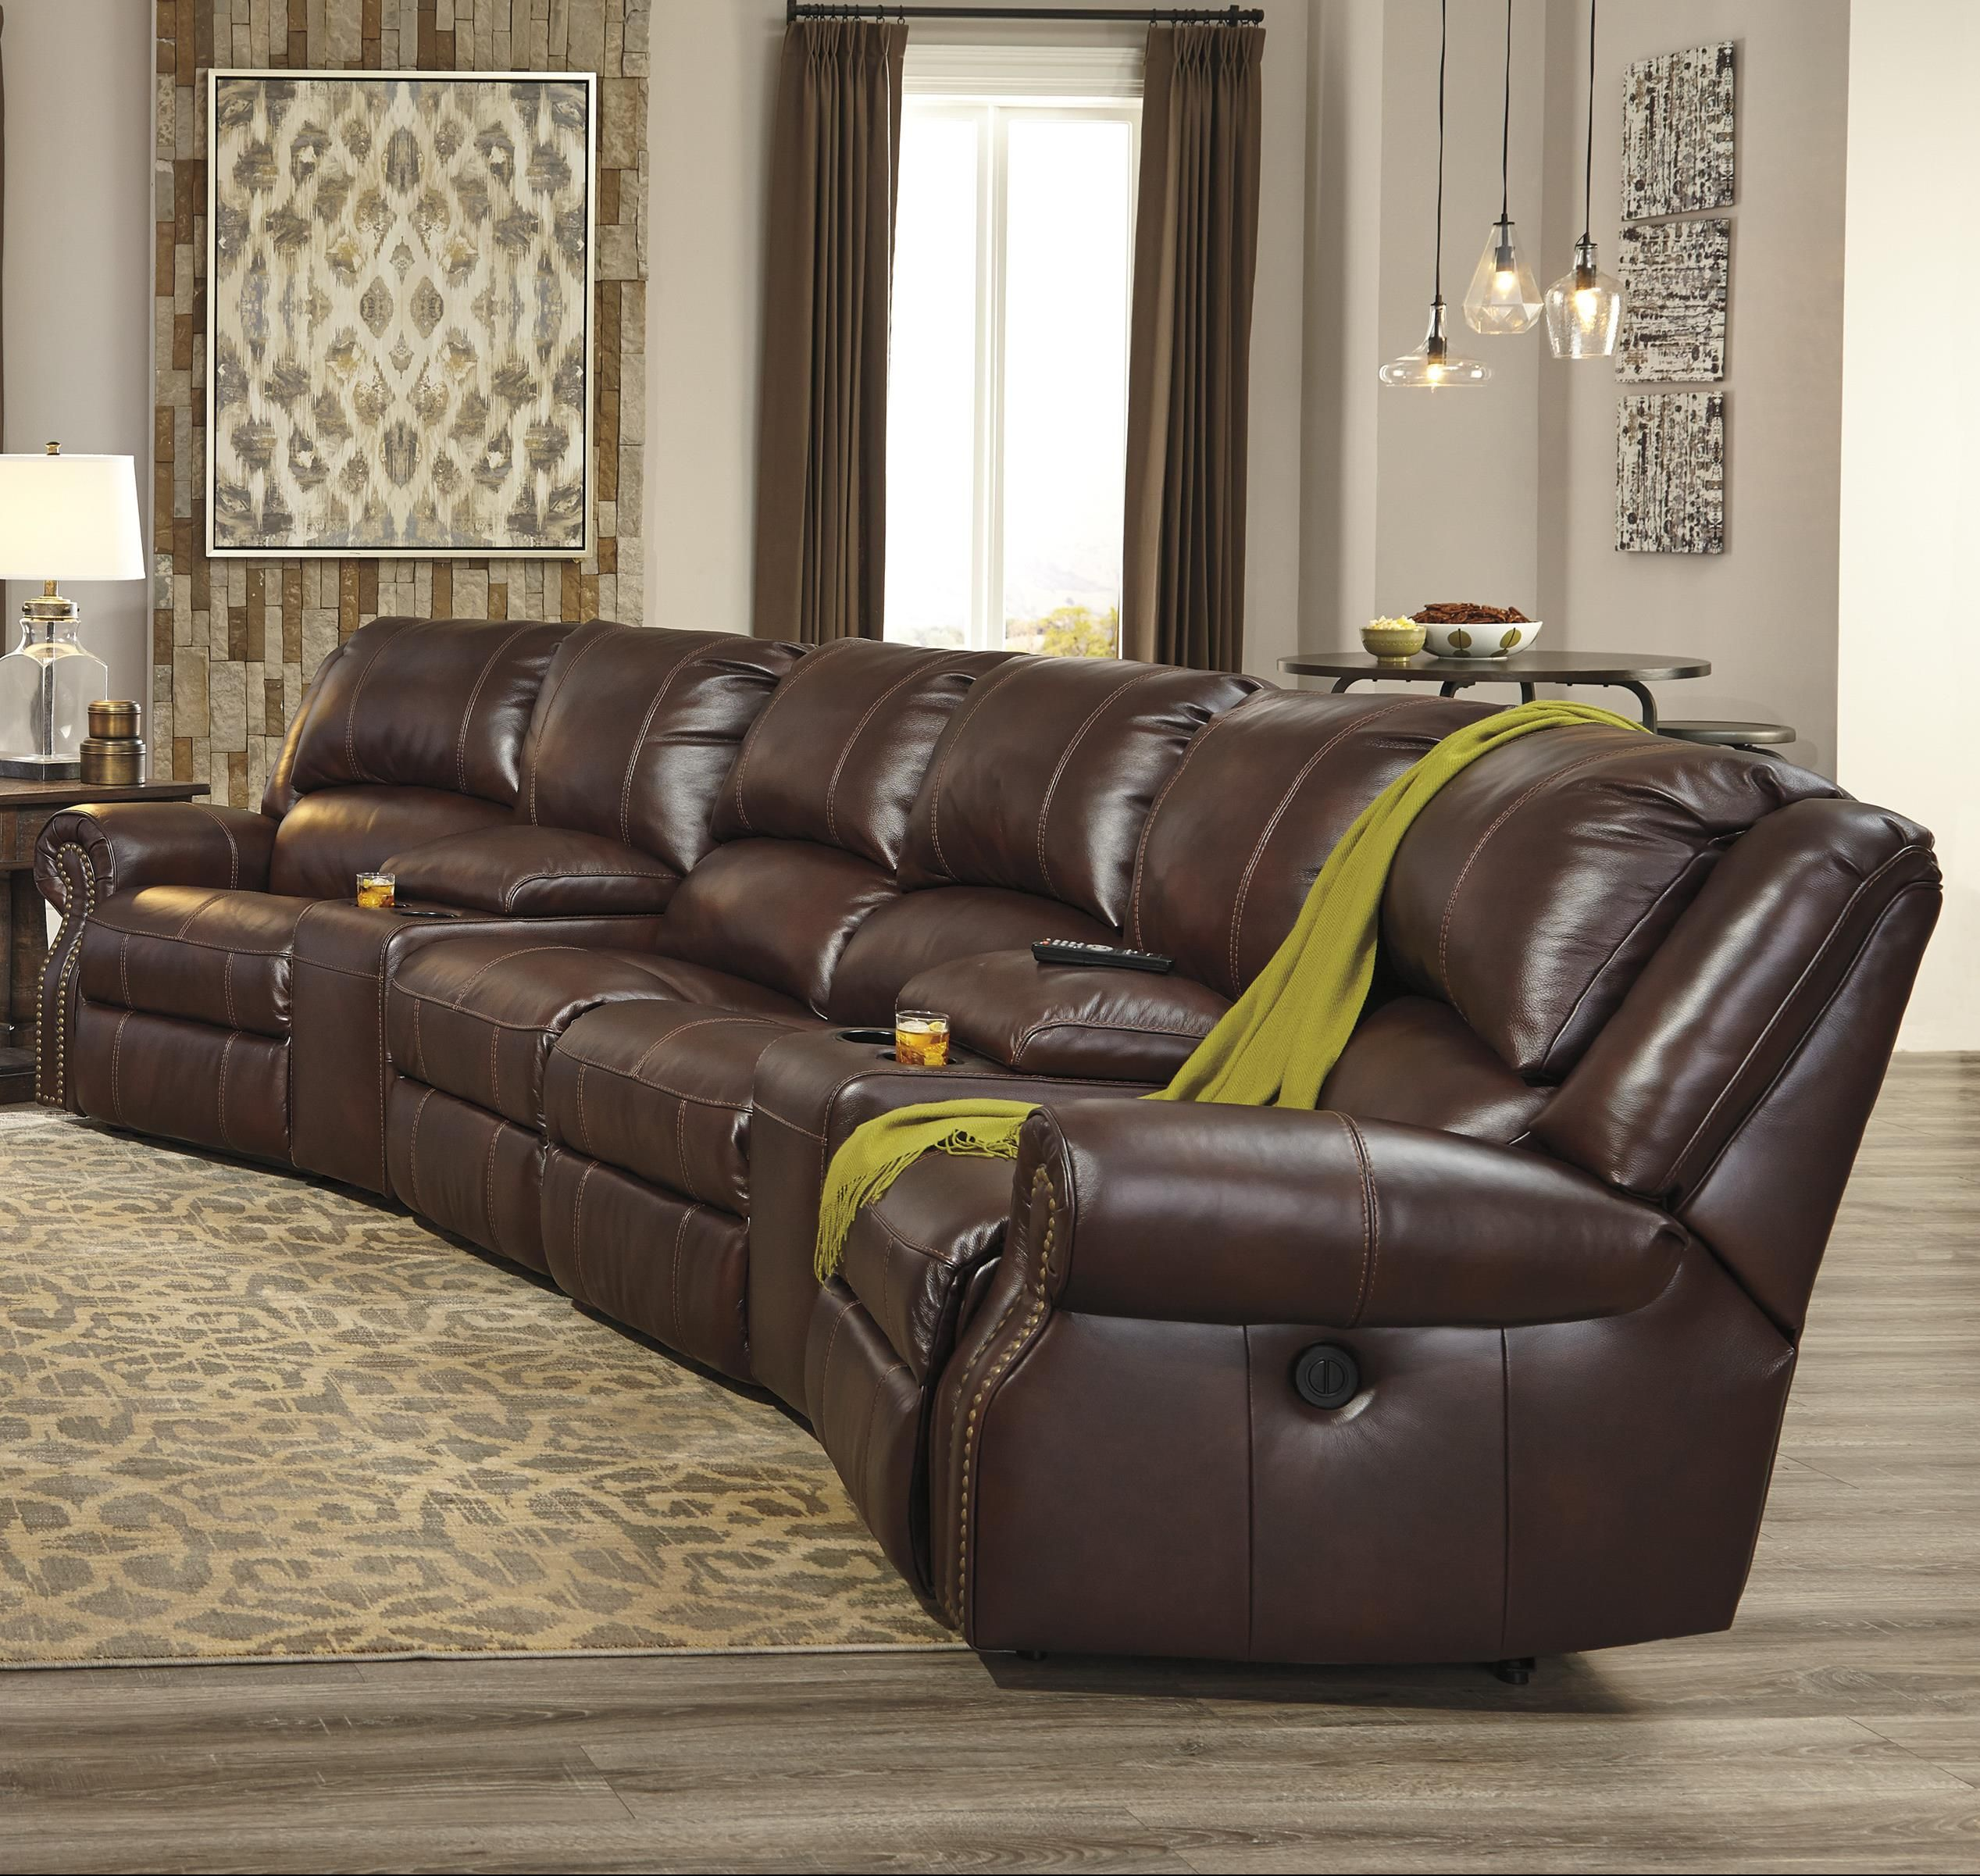 Enjoy Luxury And Comfort With This Transitional Power Reclining